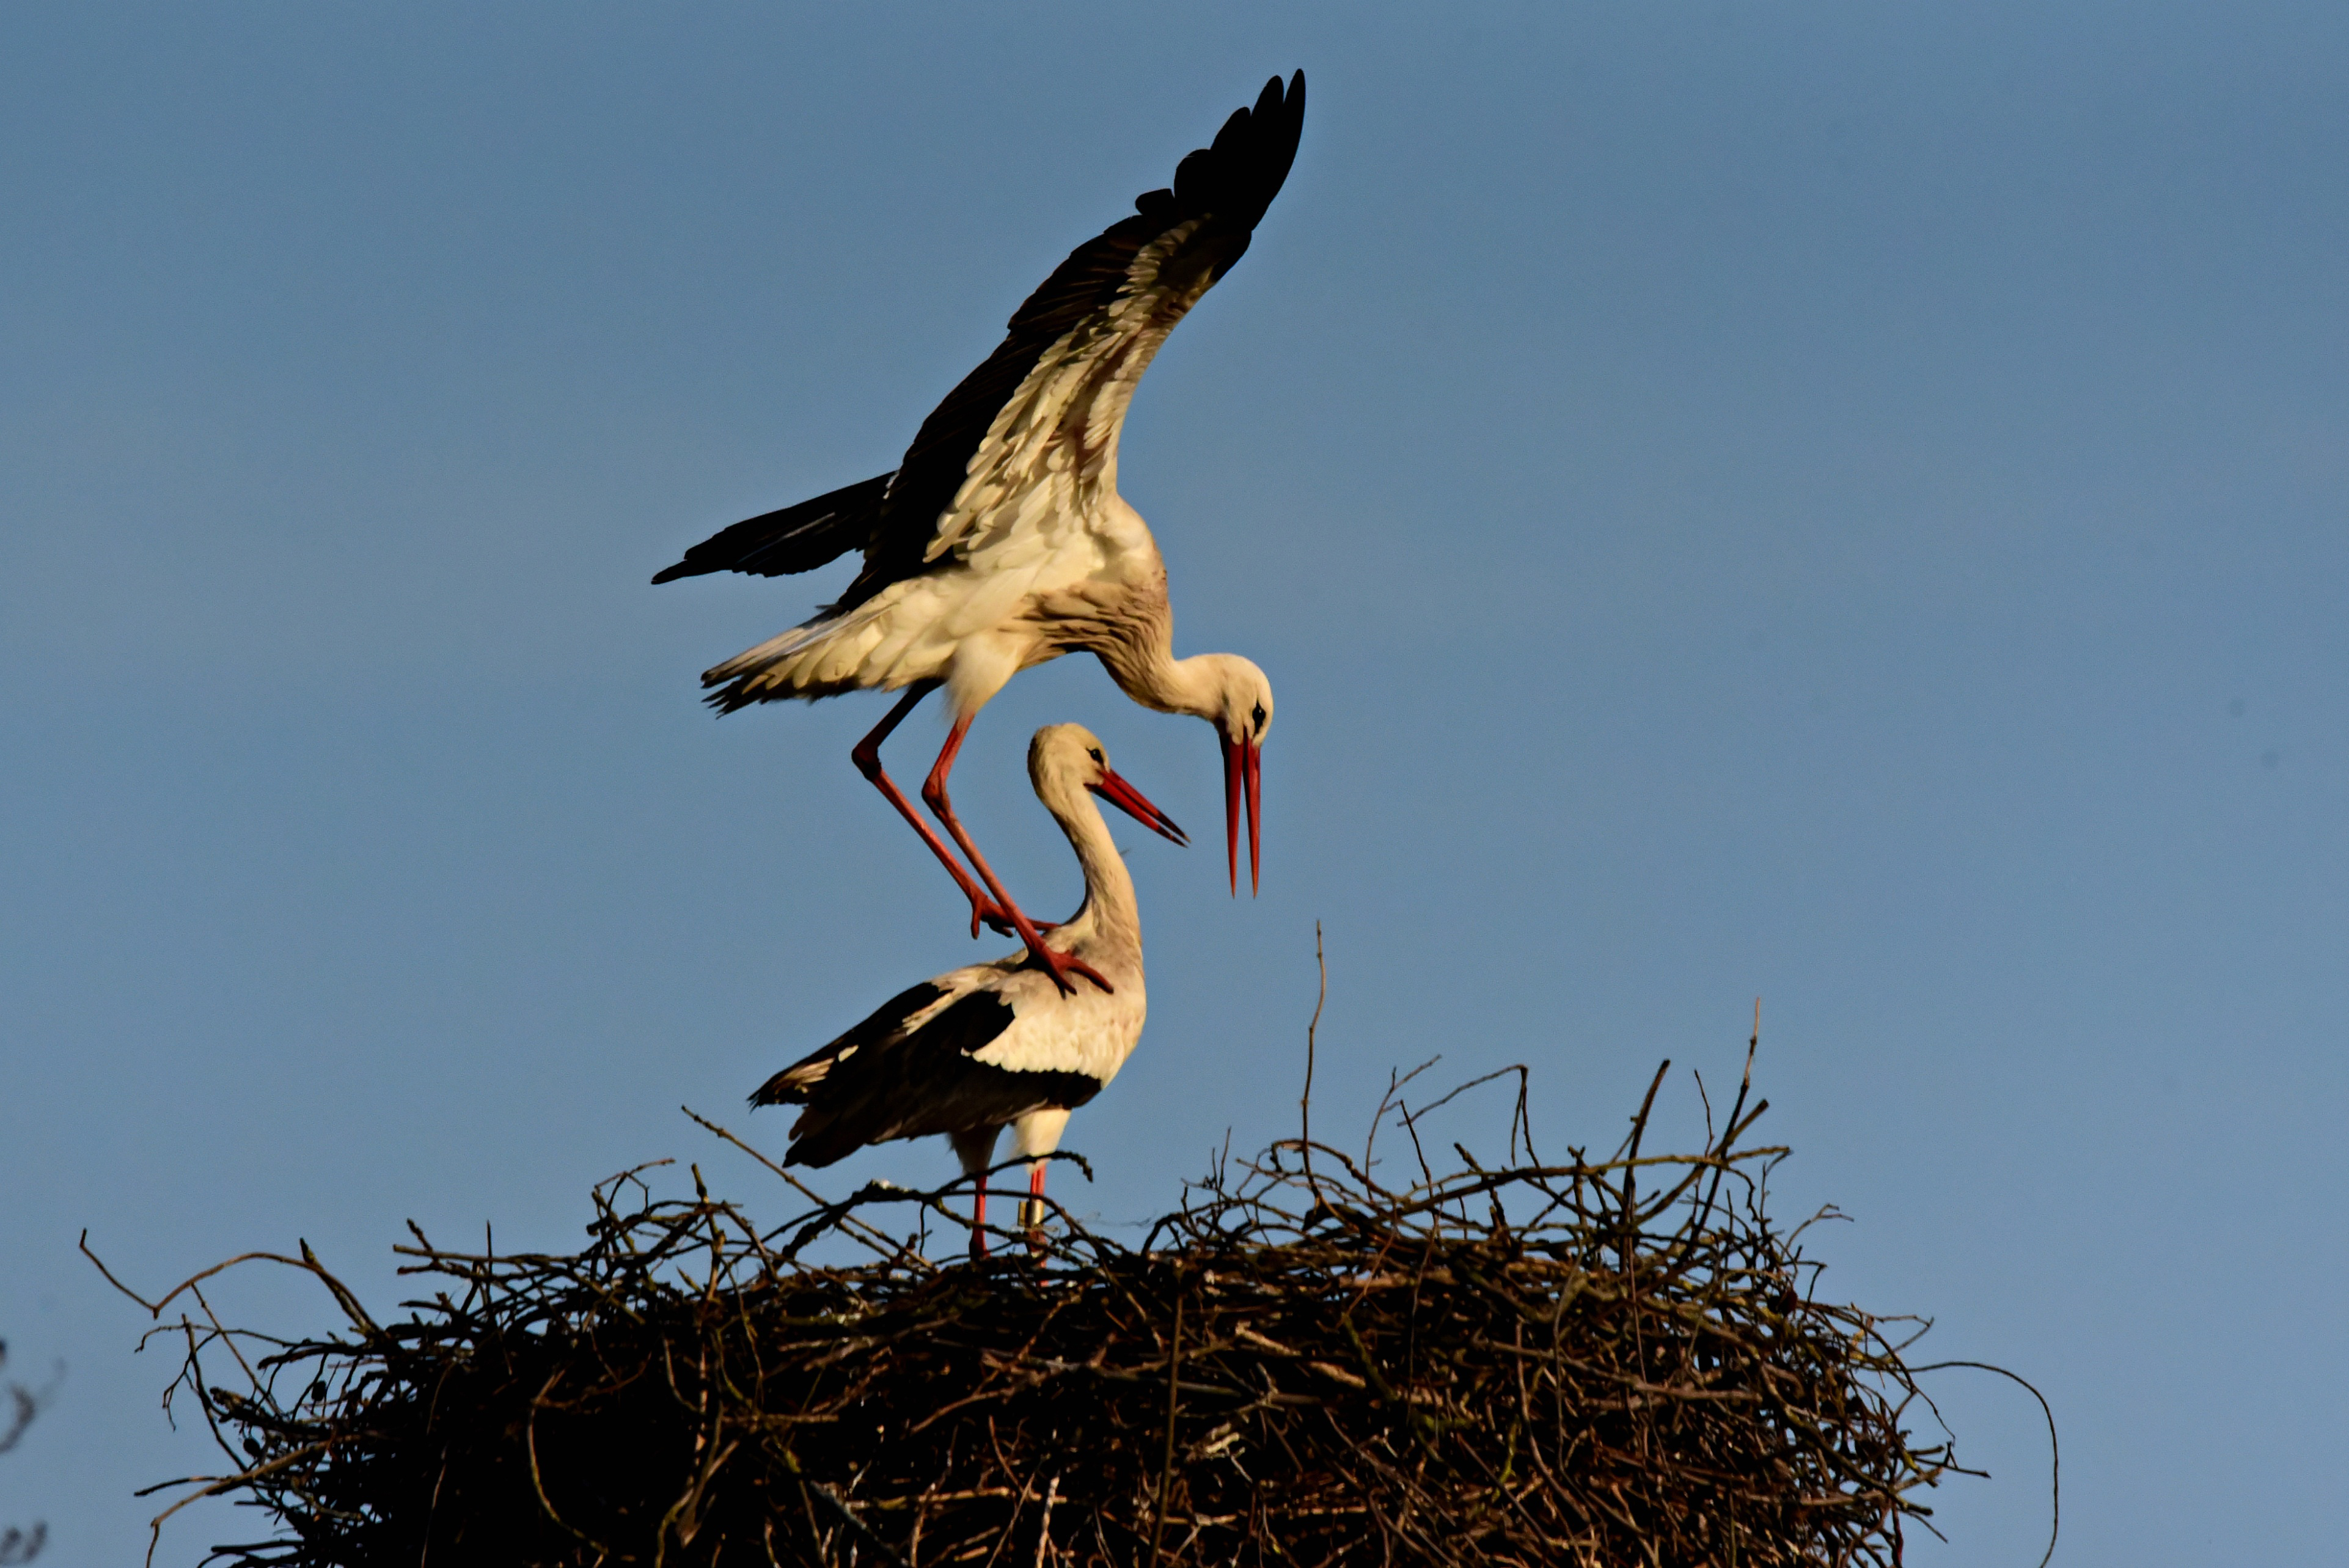 stork, bird, animal, mating, nest, wing, feather,